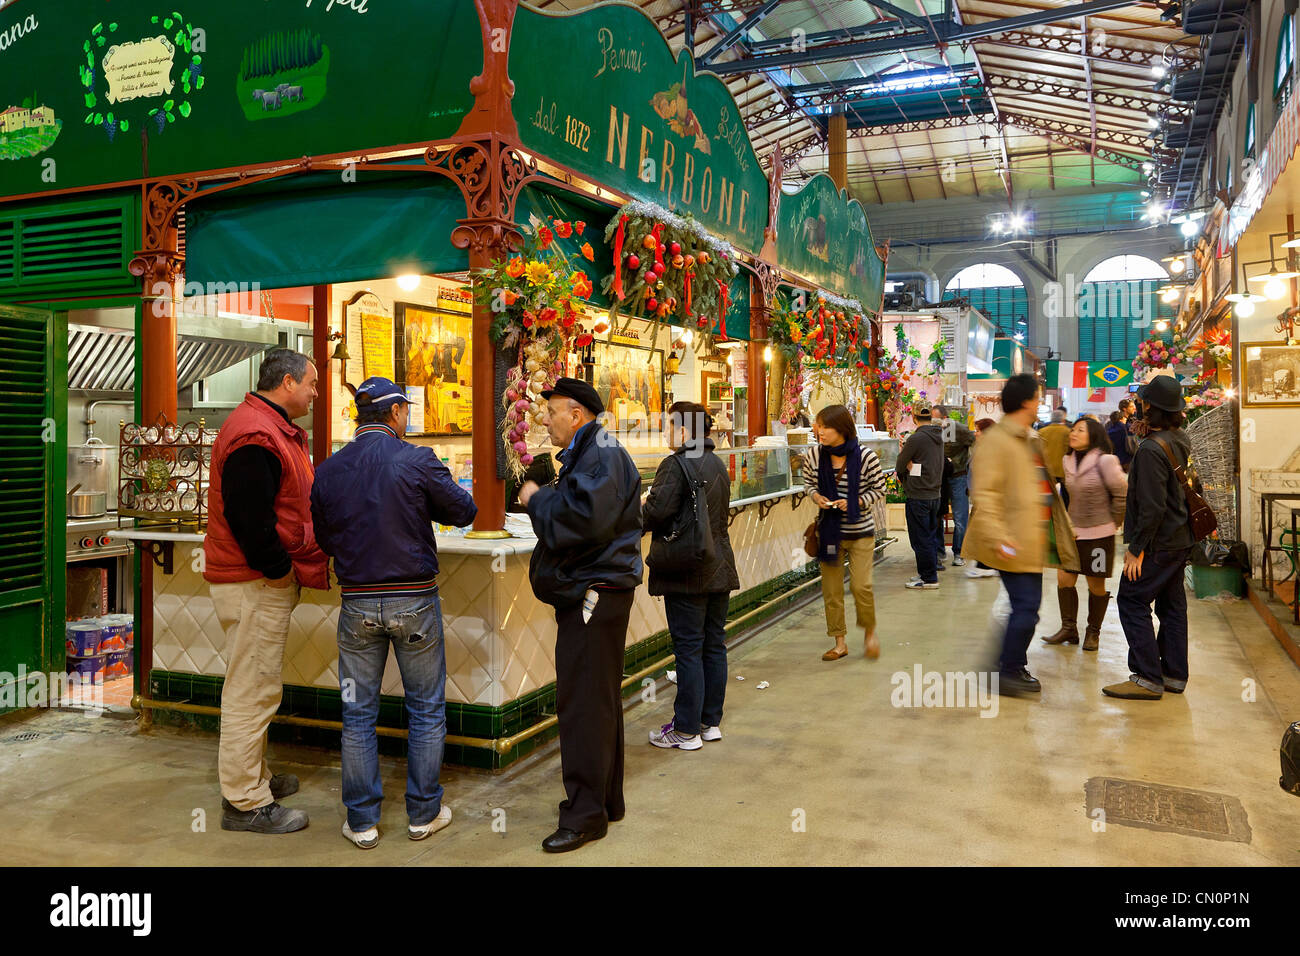 Italy, Florence, Mercato Centrale - Stock Image